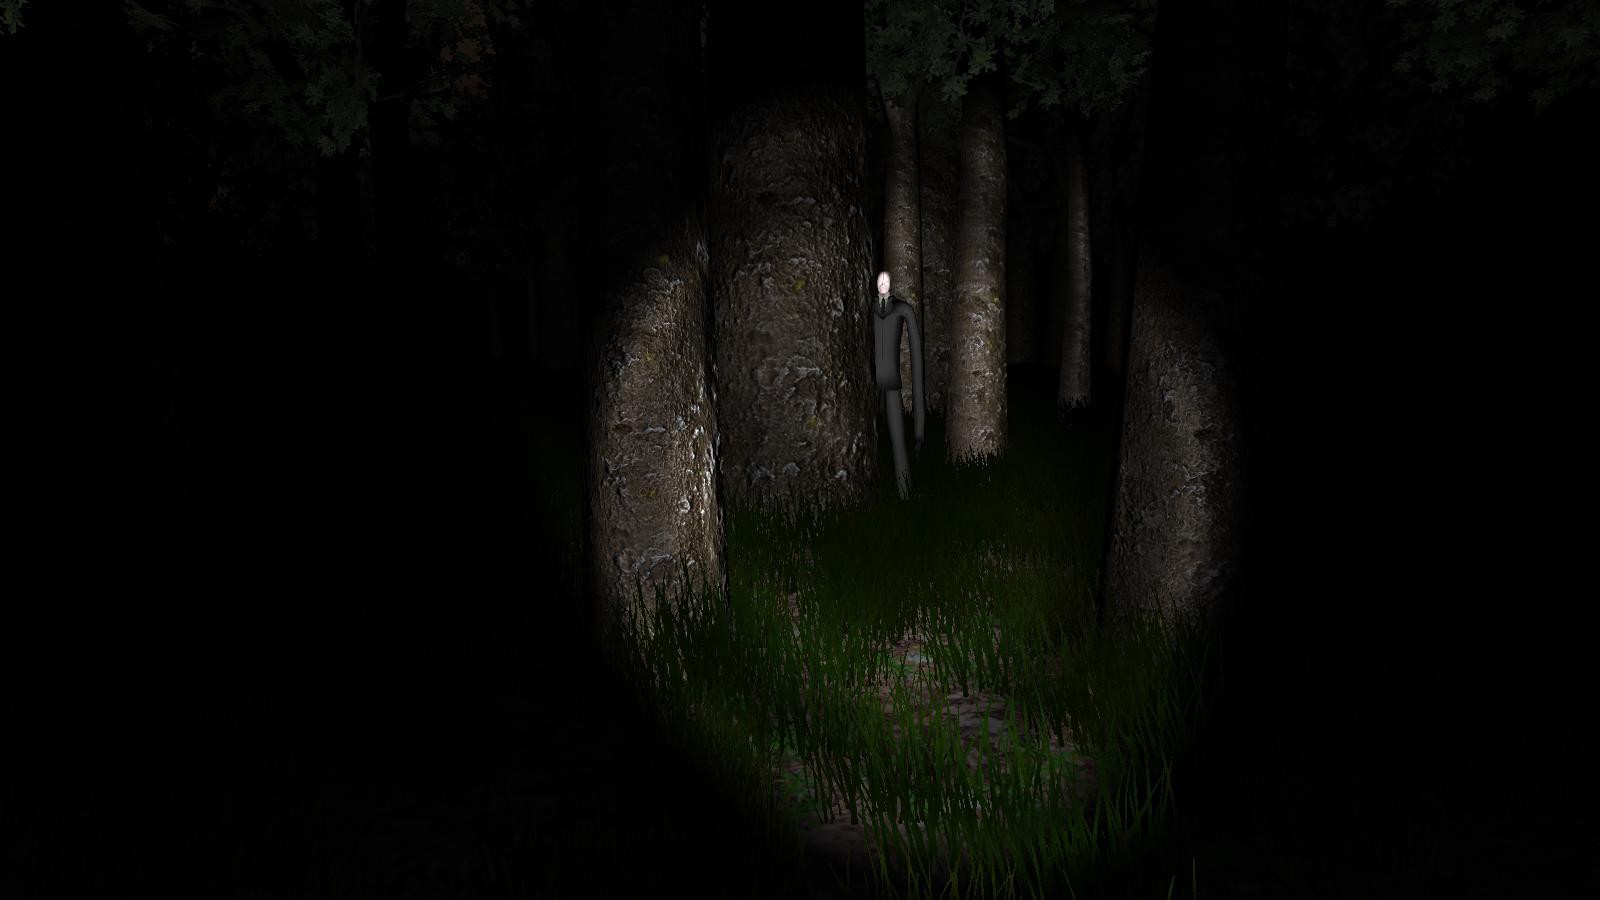 A screenshot of the game Slender: The Eight Pages, showing very simple graphics.